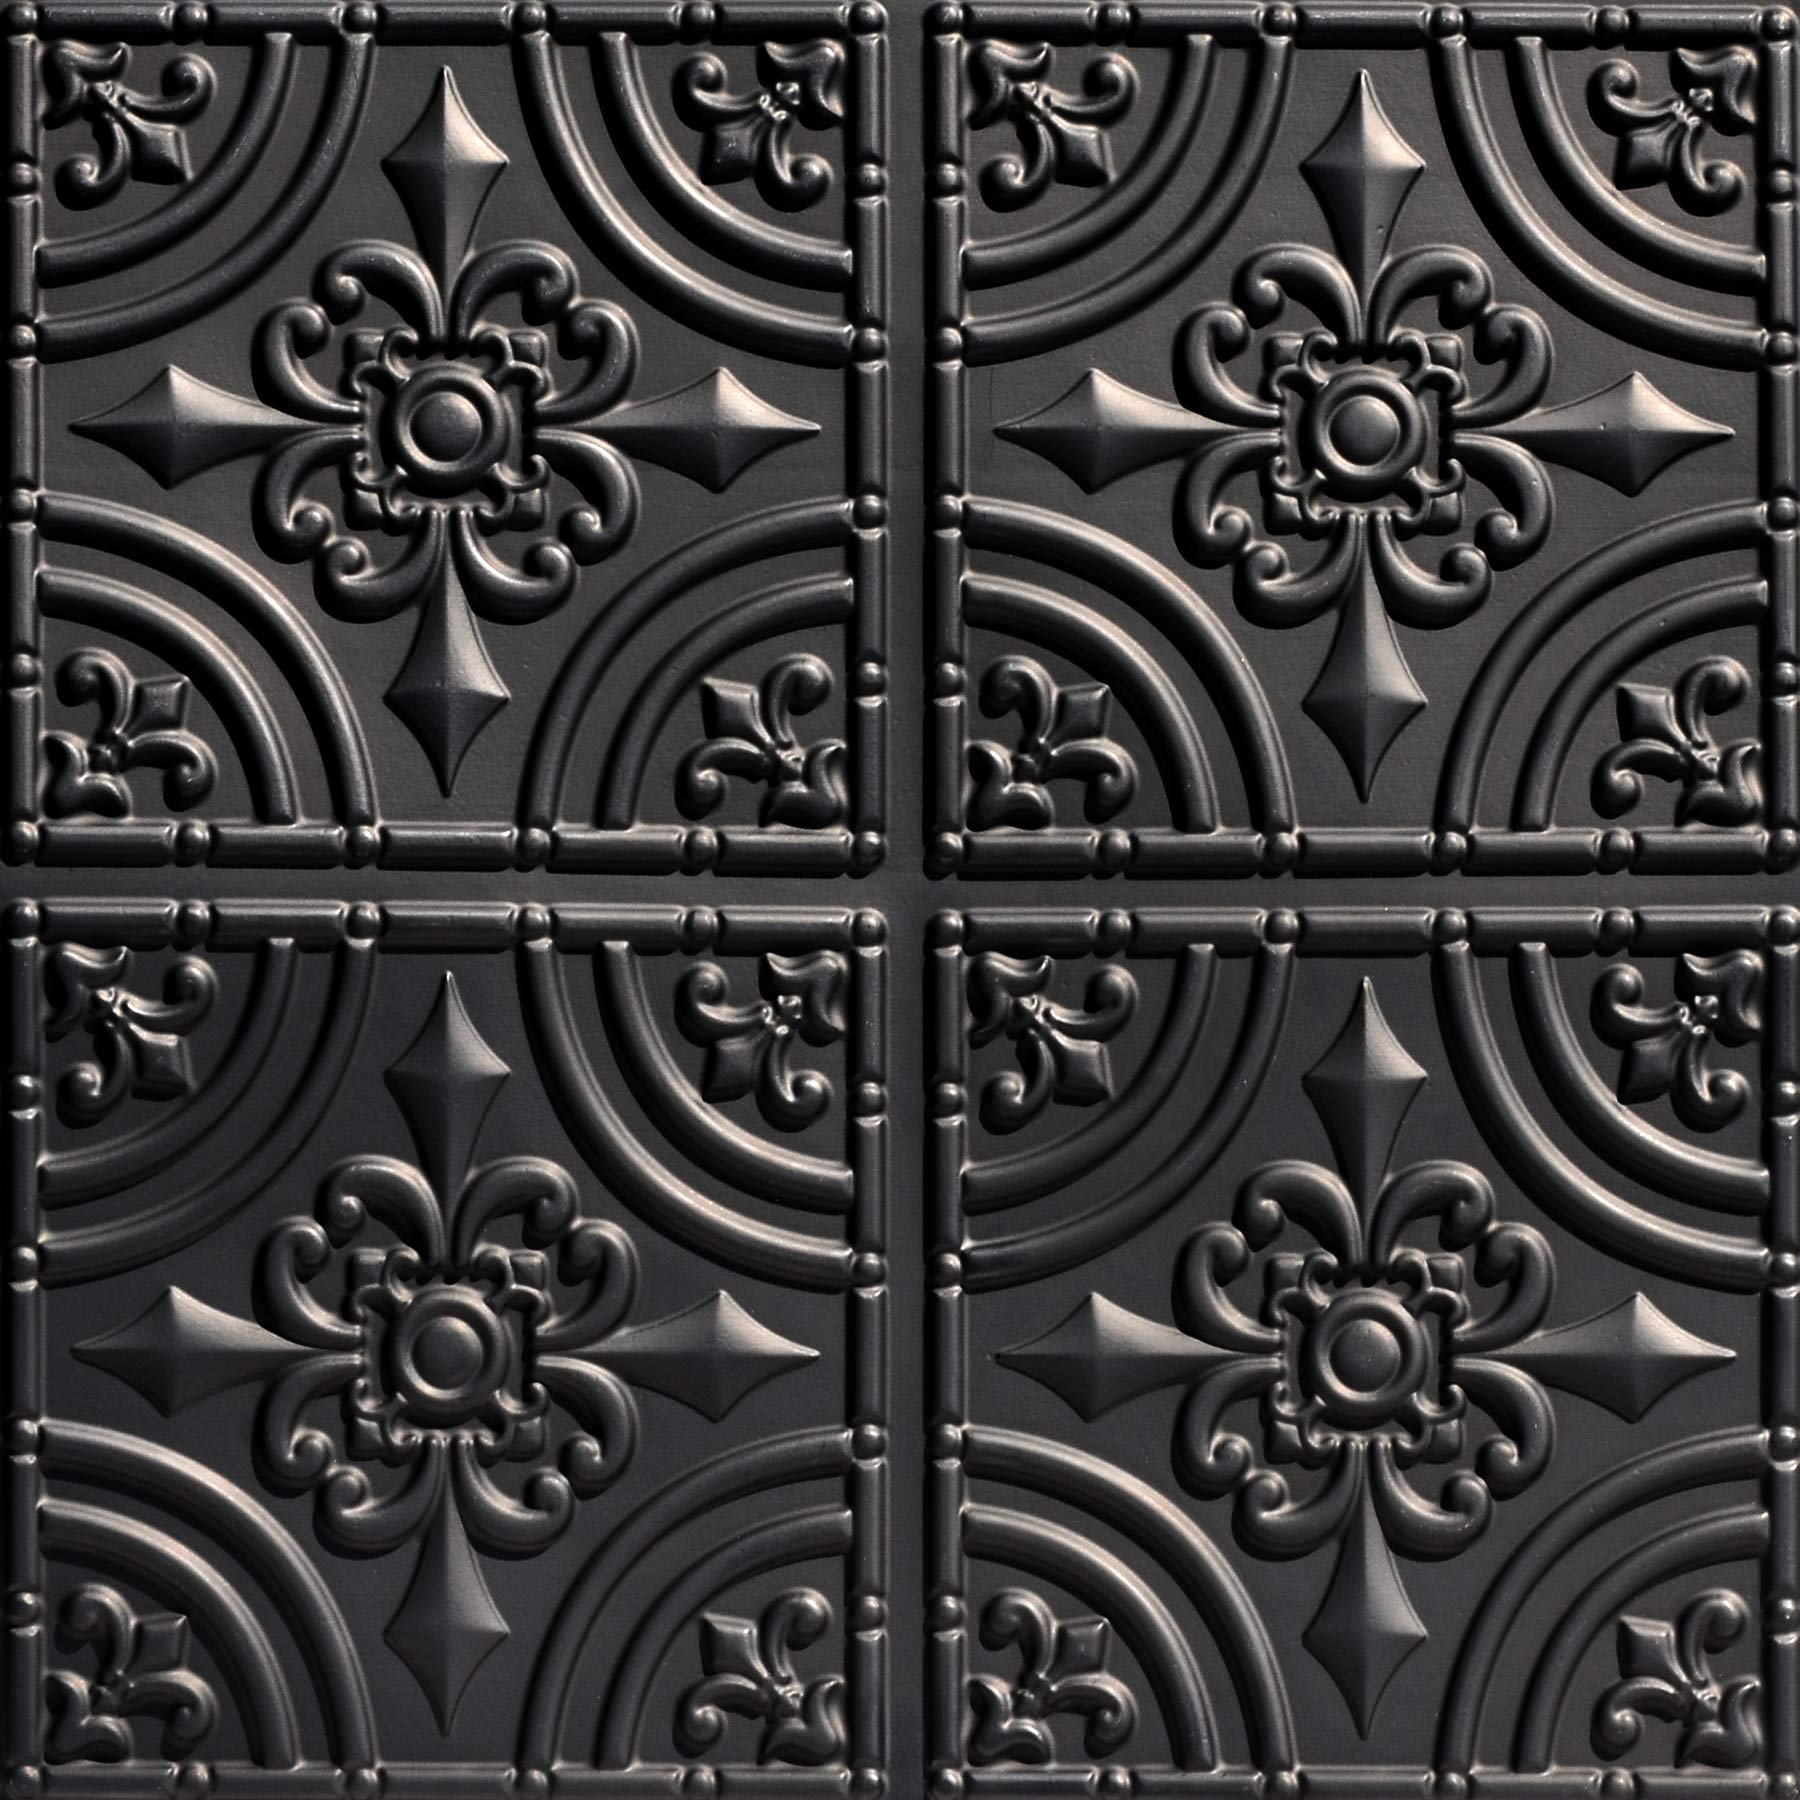 From Plain To Beautiful In Hours 205bk-24x24-25 Wrought Iron Ceiling Tile Black 25